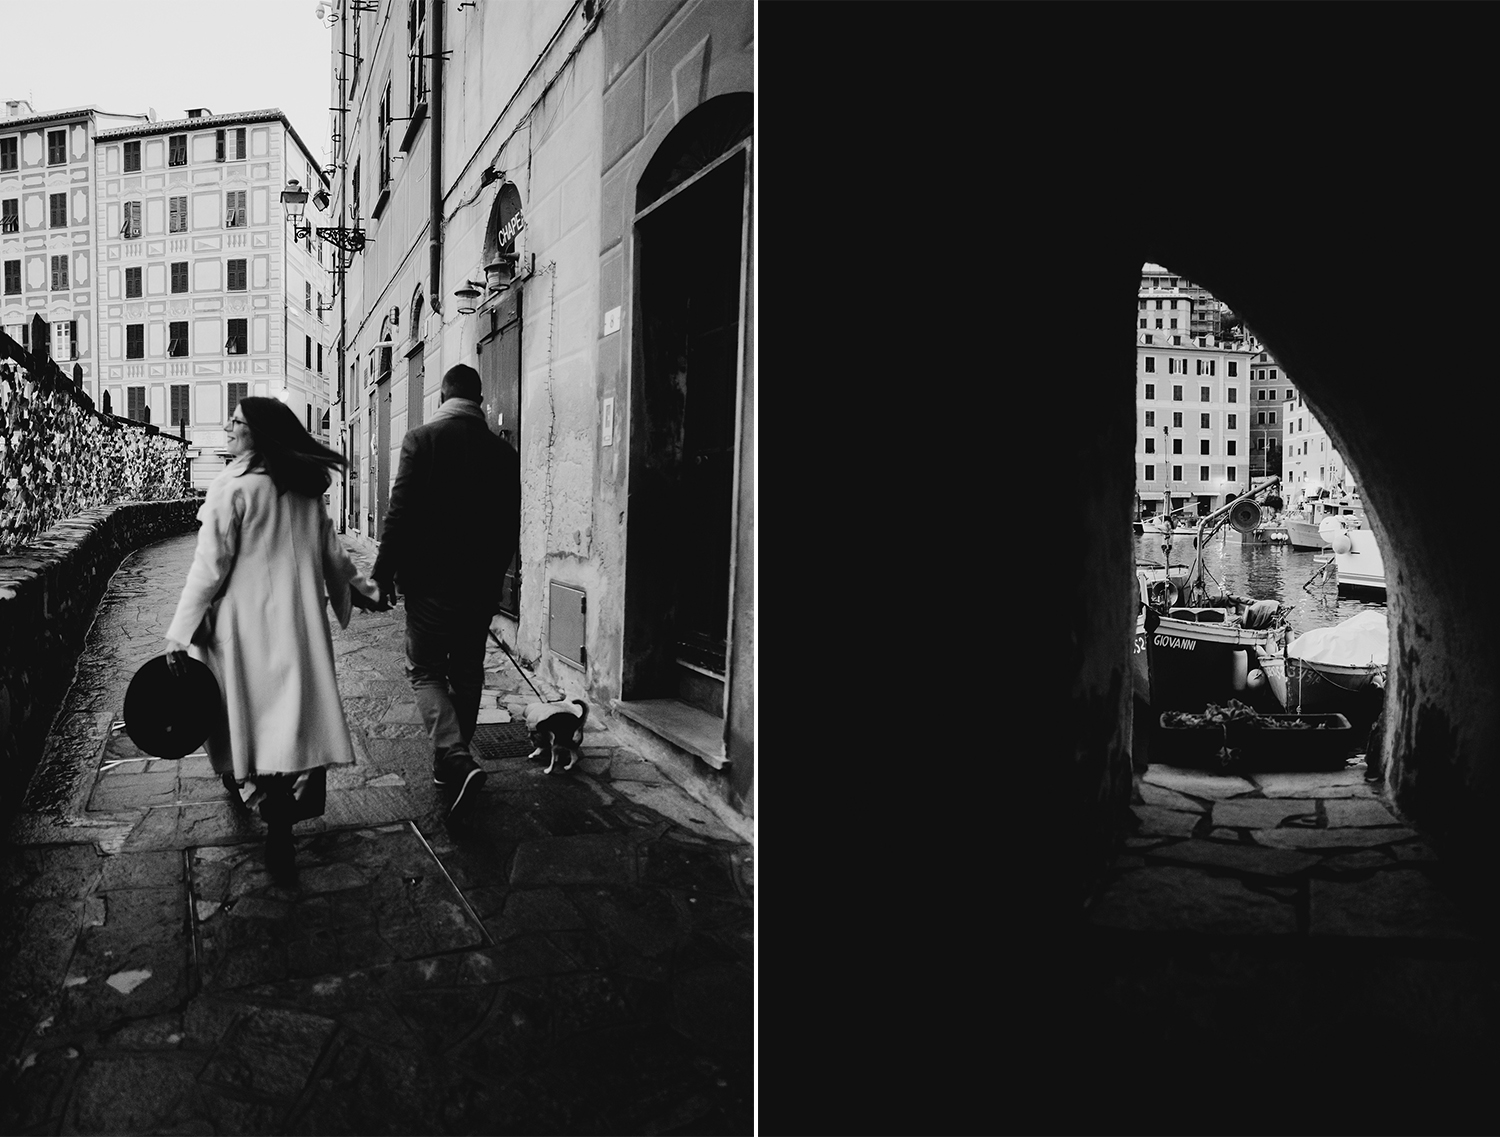 Rebecca Rinaldi maternity photographer in Italy. maternity photo shoot in Camogli, Couple leaving the town.